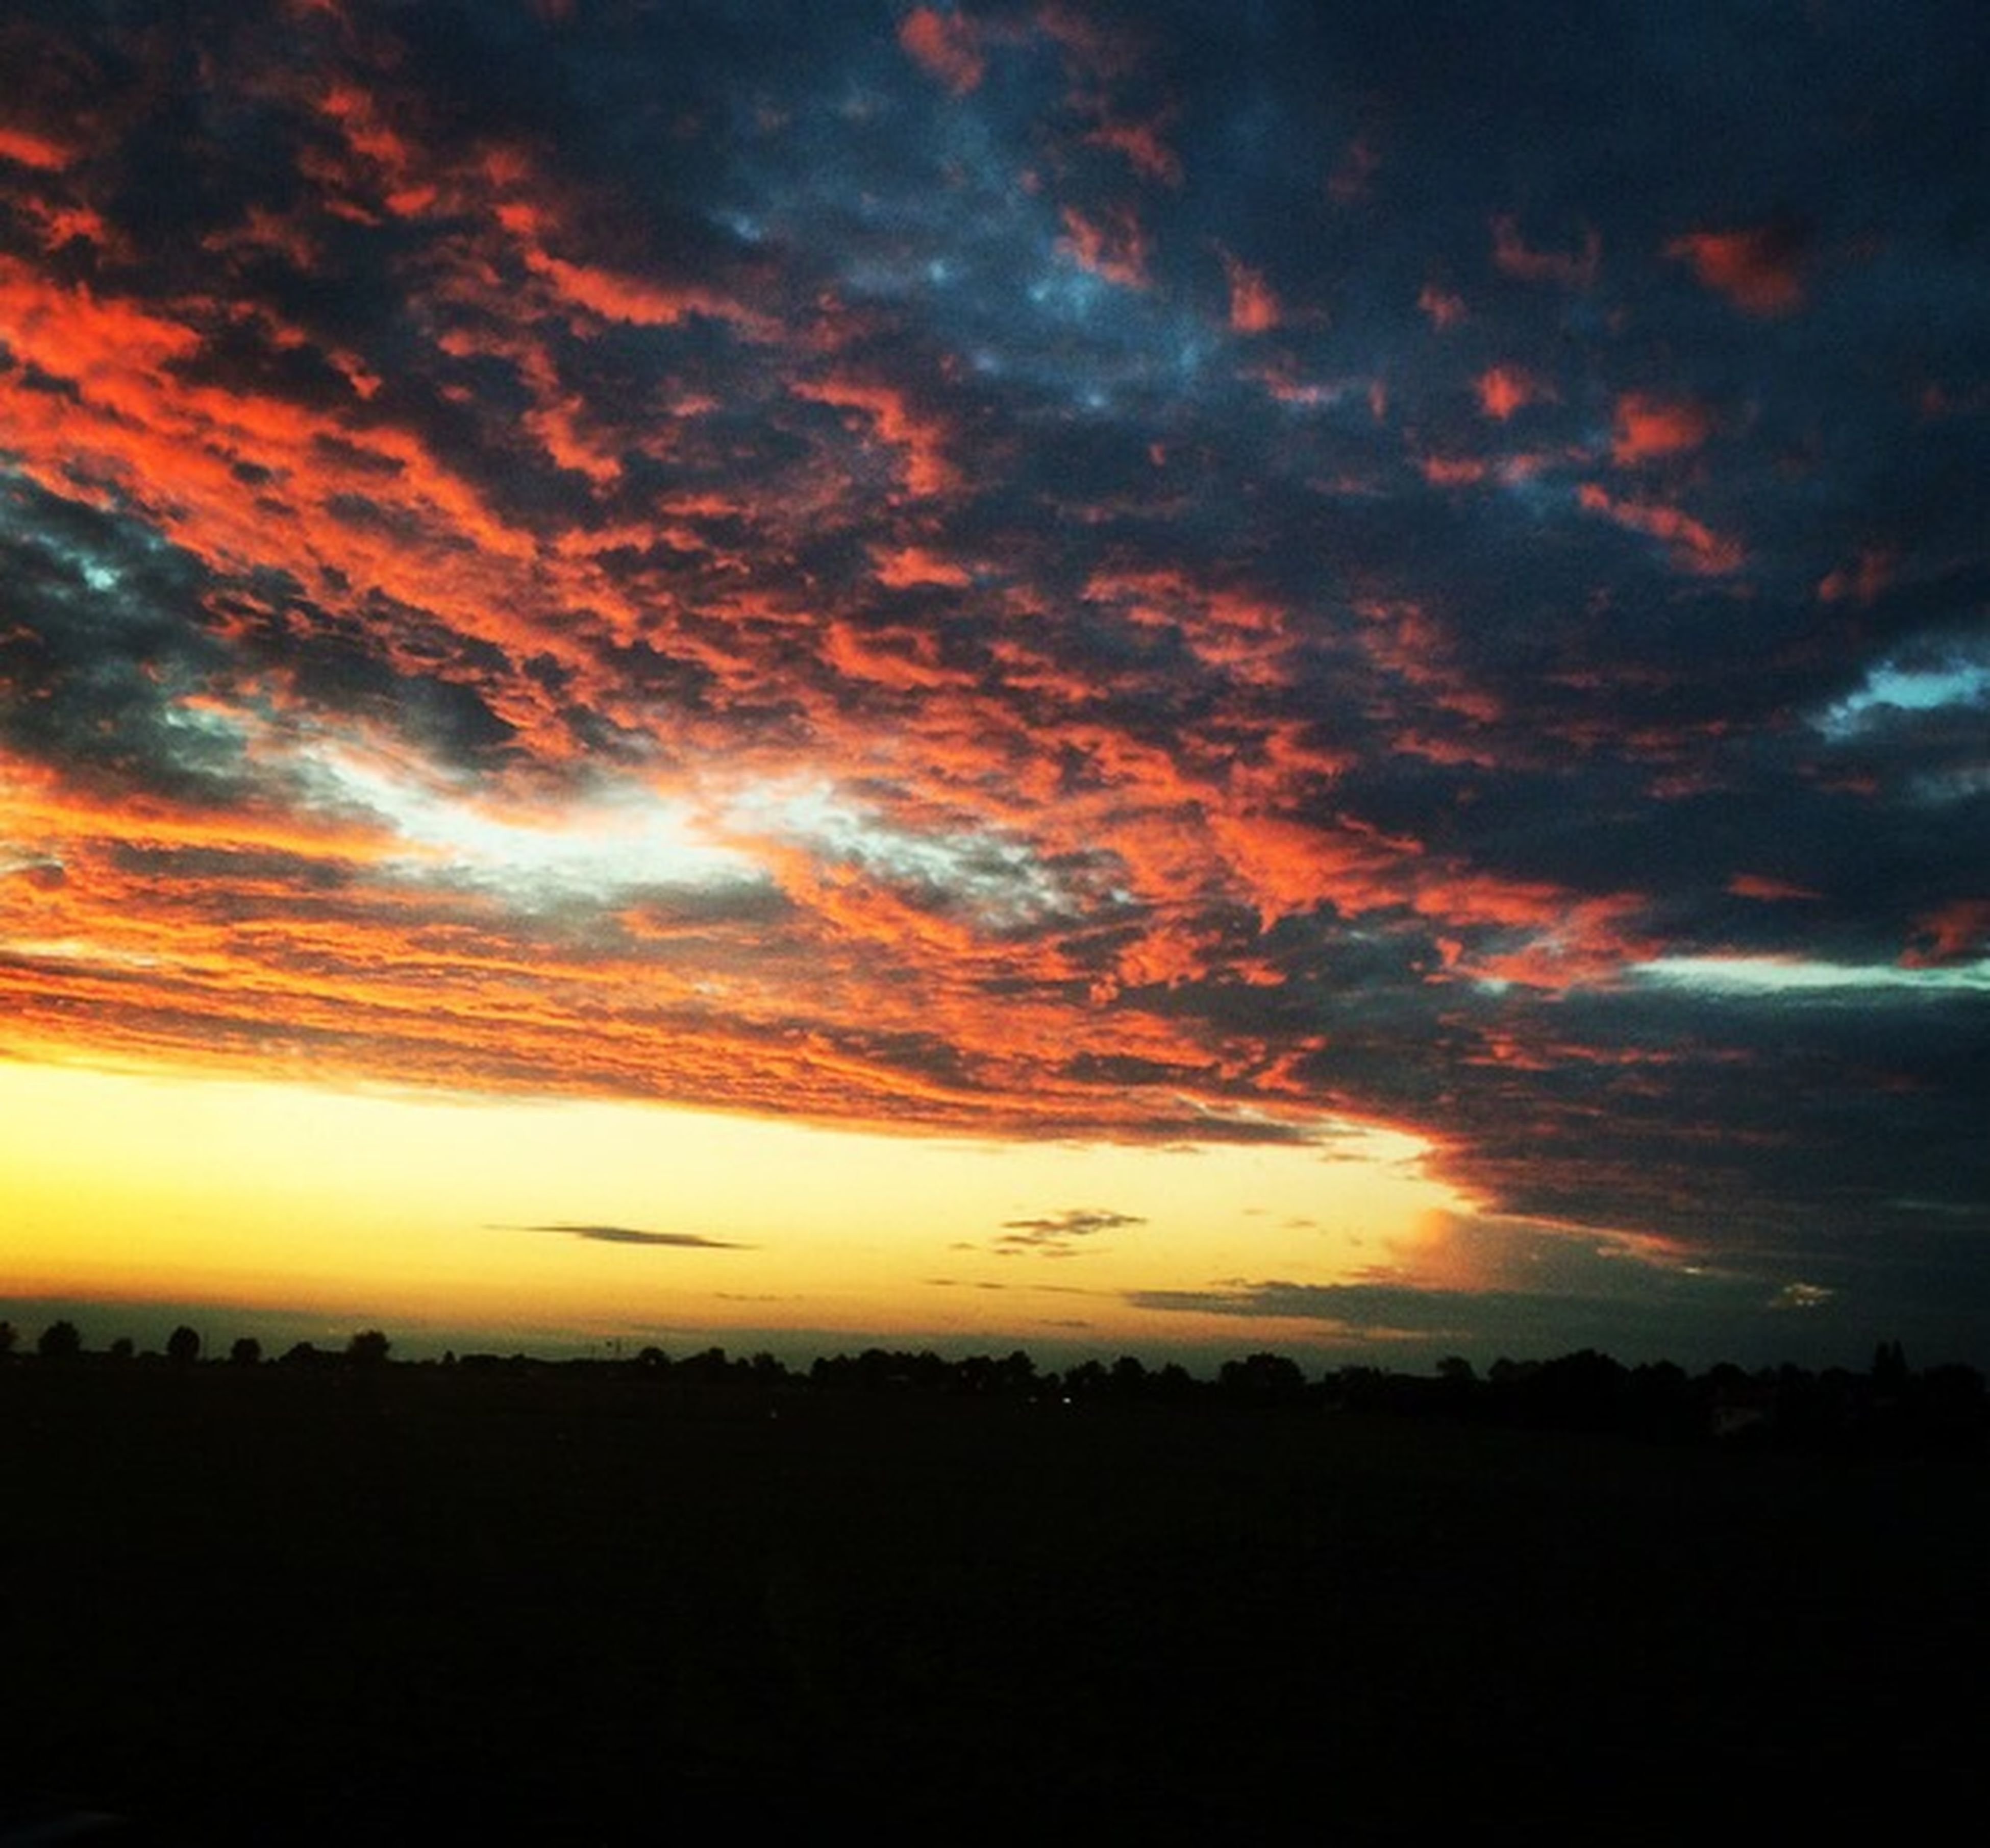 sunset, silhouette, sky, scenics, cloud - sky, beauty in nature, tranquil scene, tranquility, orange color, dramatic sky, cloudy, idyllic, nature, cloud, landscape, atmospheric mood, moody sky, dark, weather, majestic